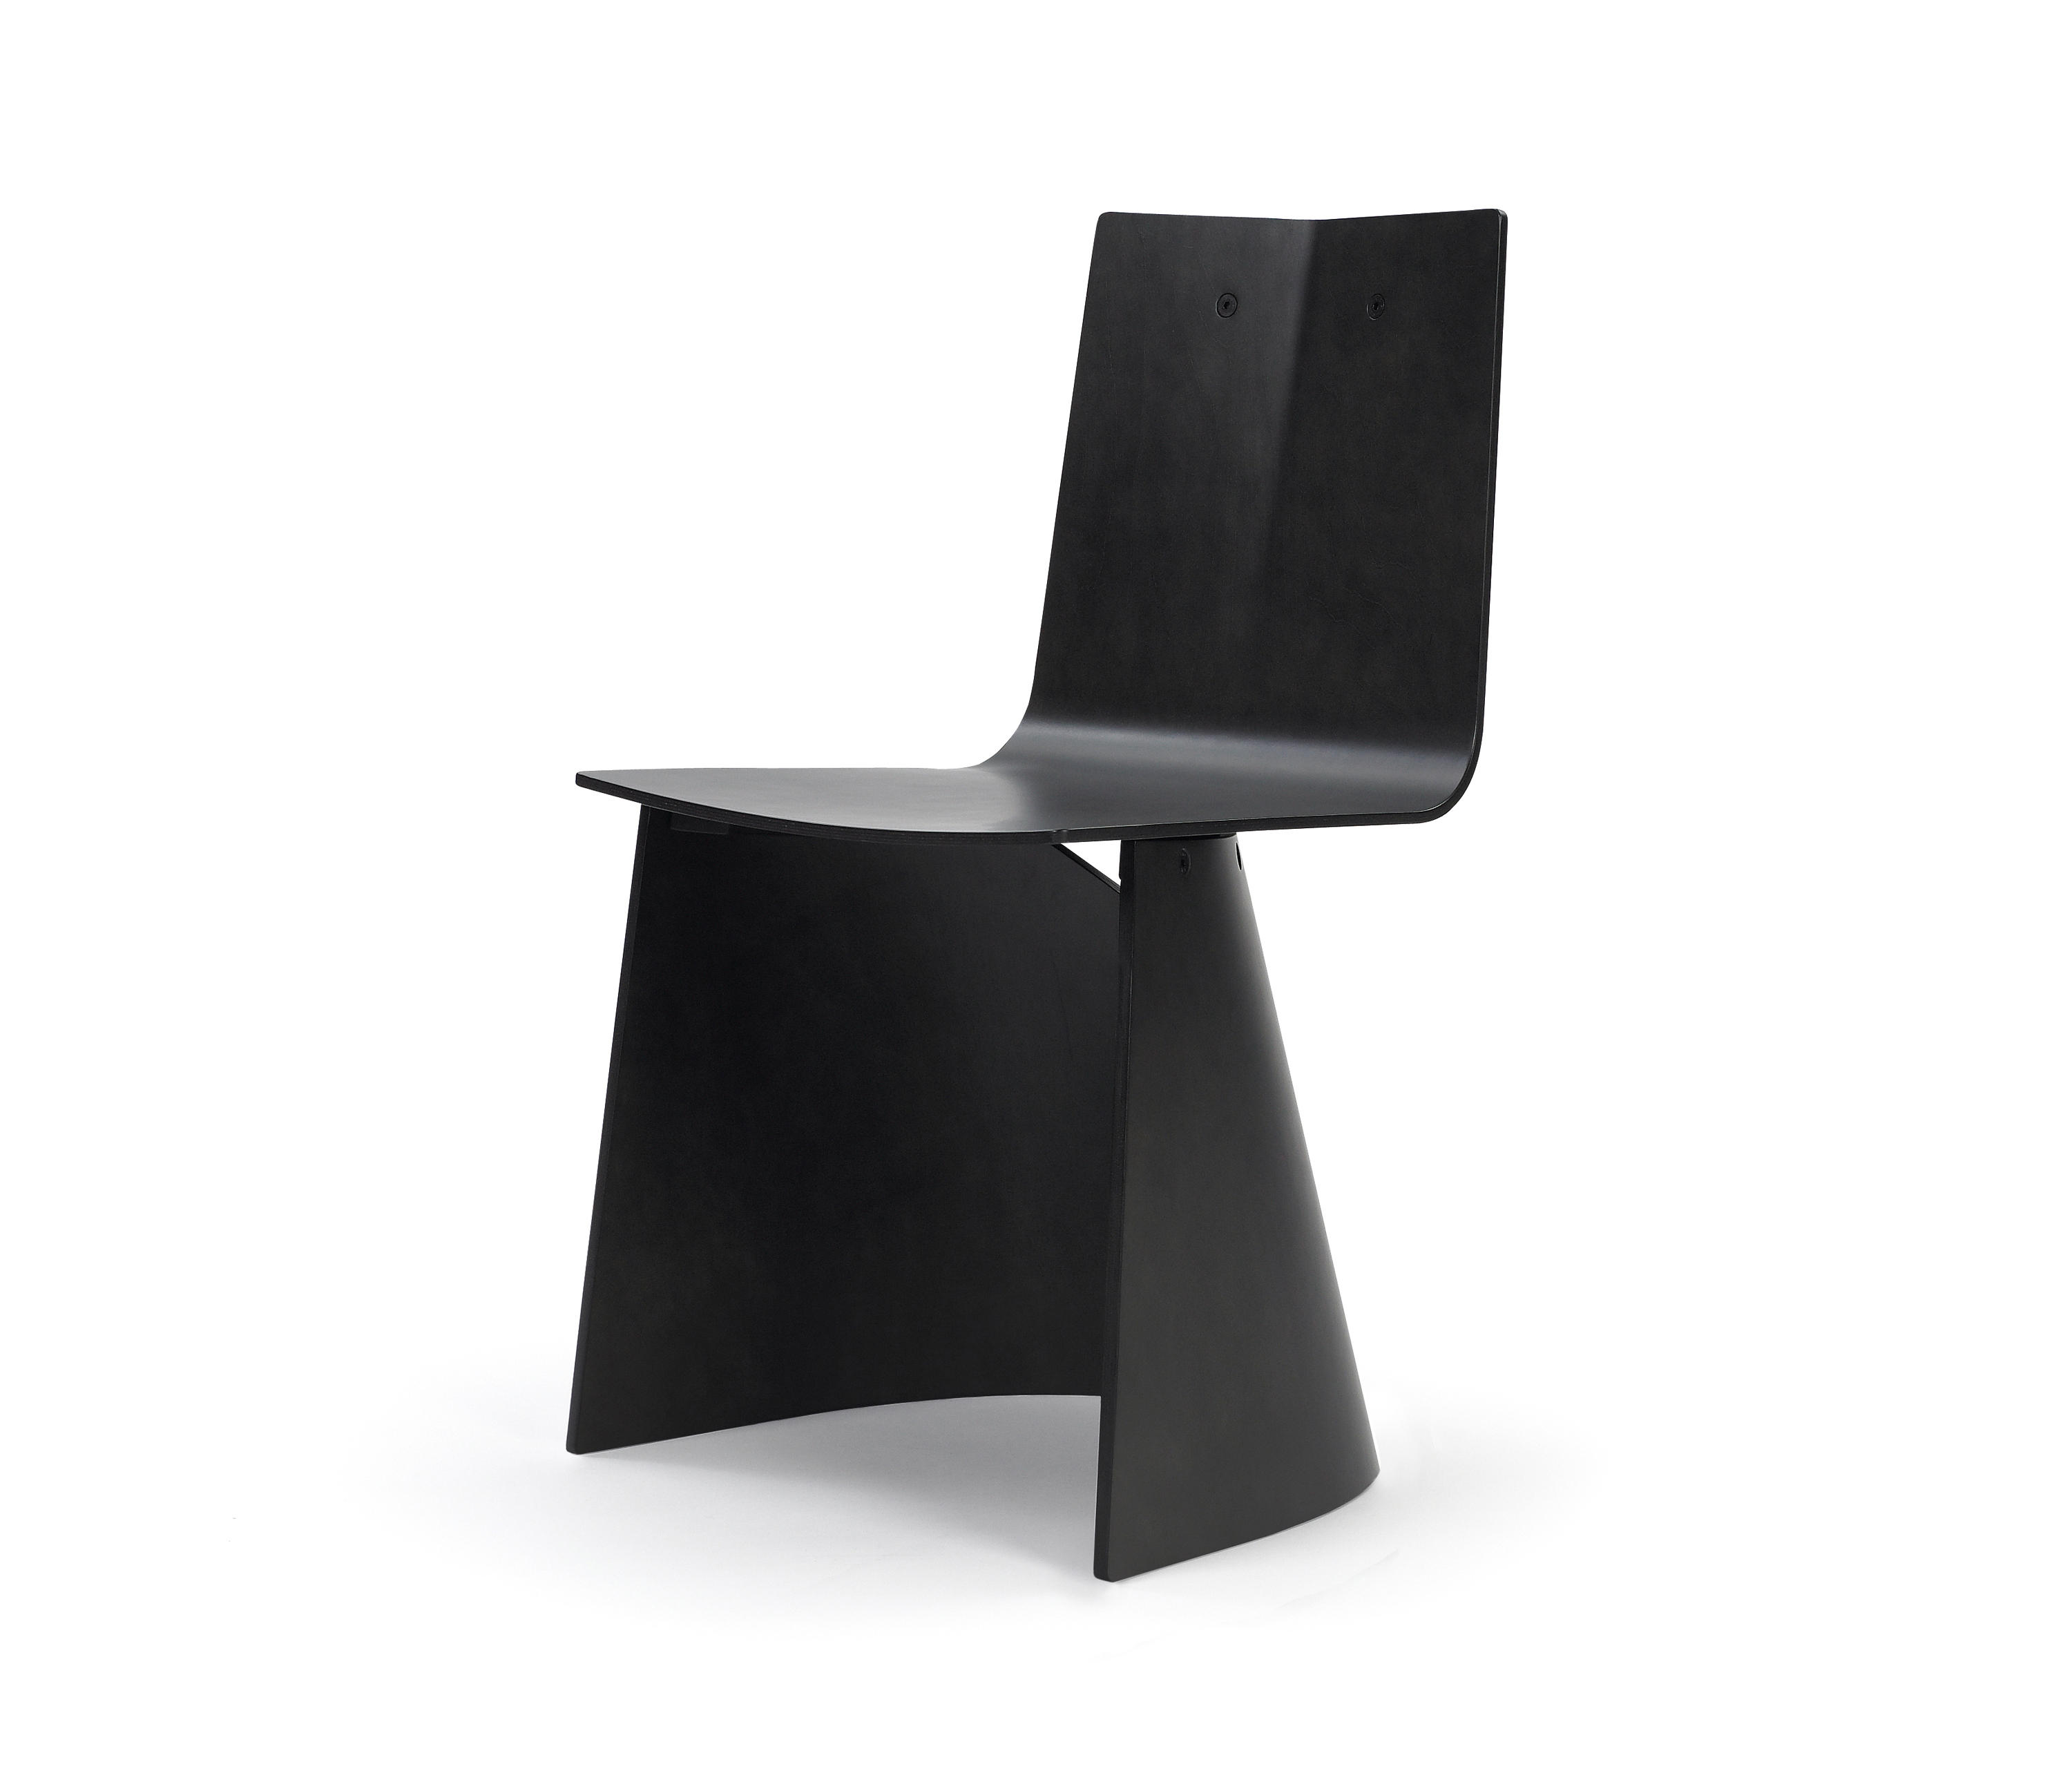 Venus Chair by Konstantin Grcic for ClassiCon